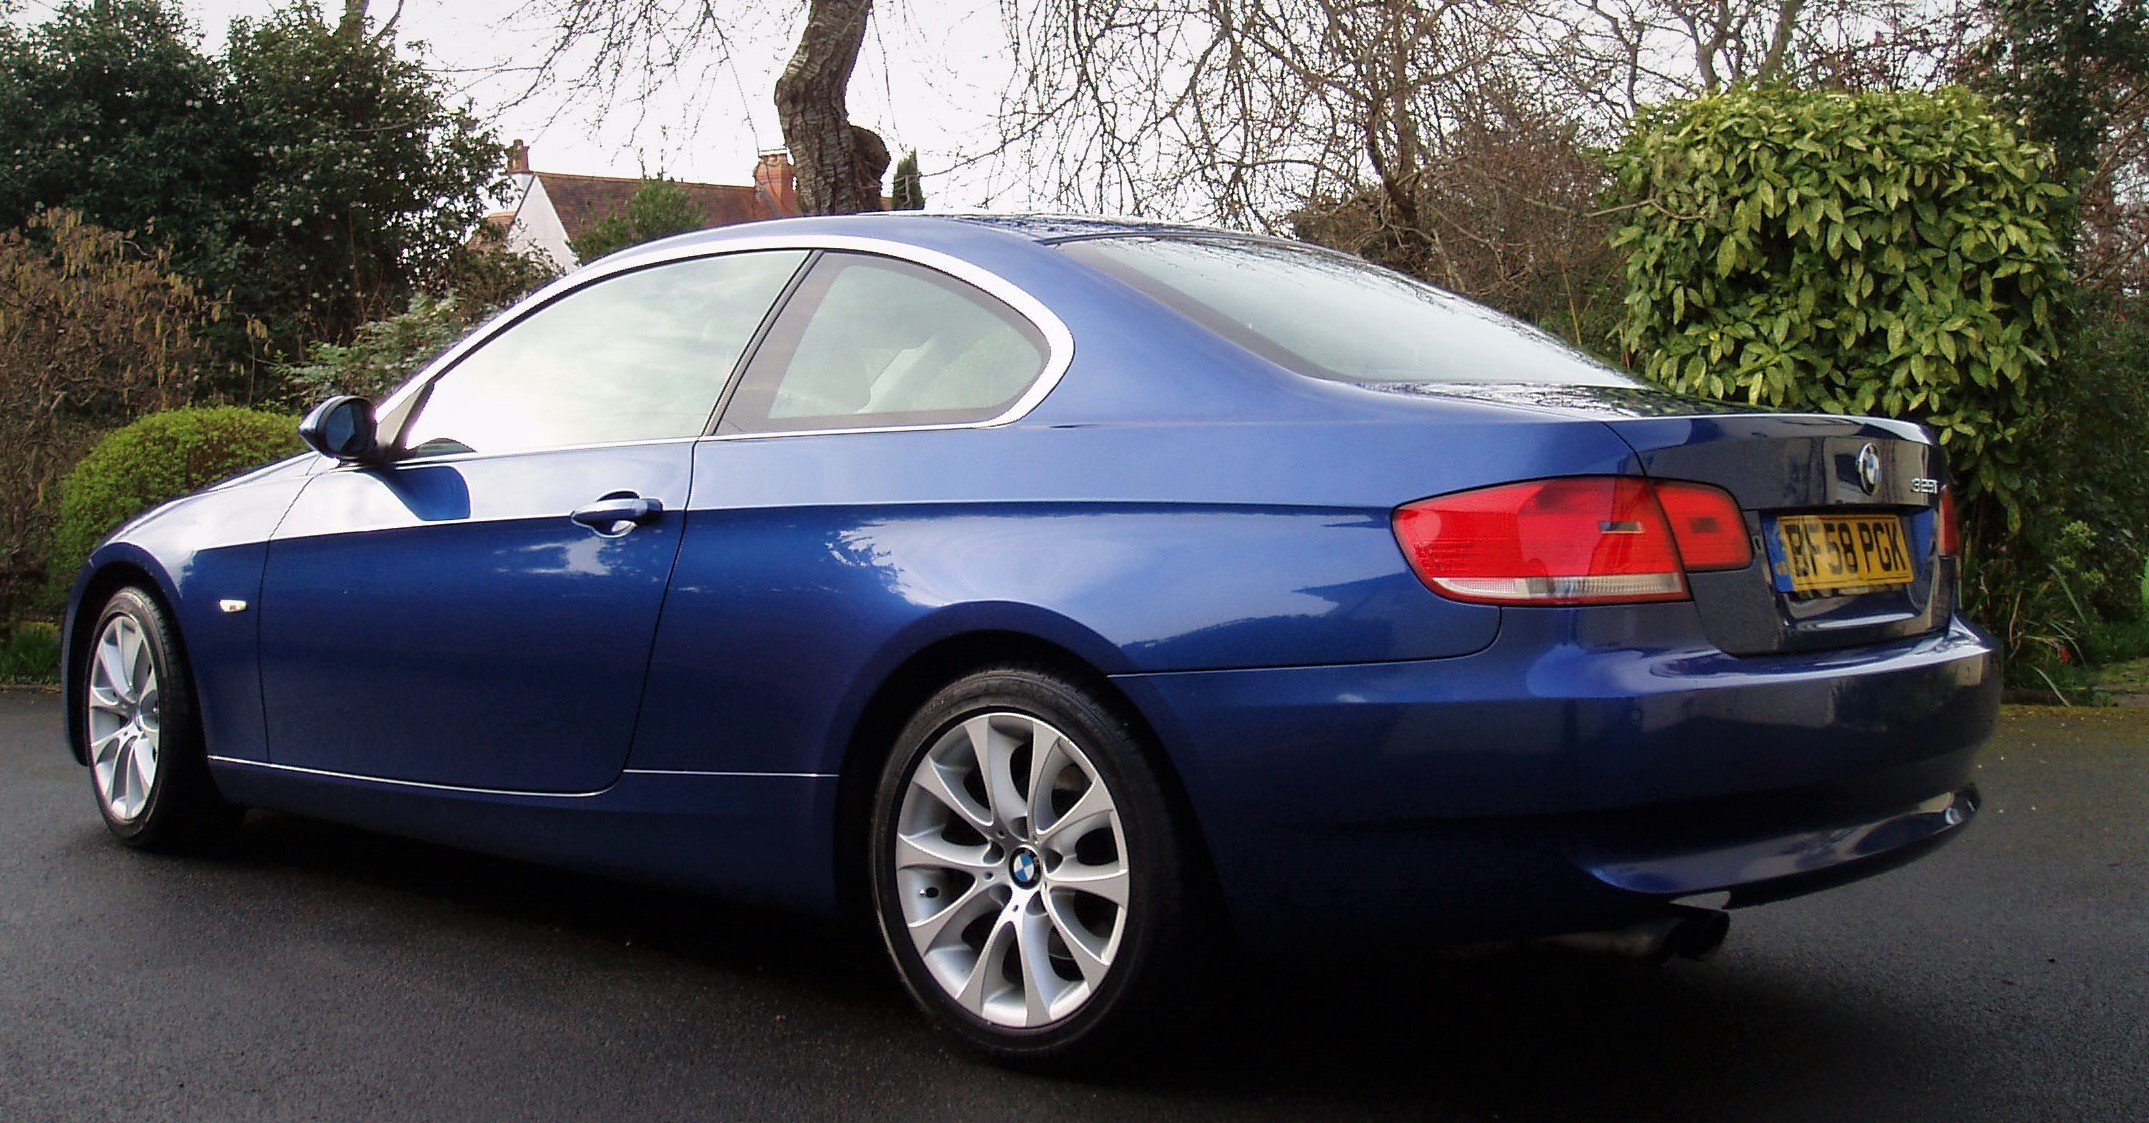 Picture of BMW 325i 3.0L E92 Coupe Blue Manual 2 Door 2009 For Sale